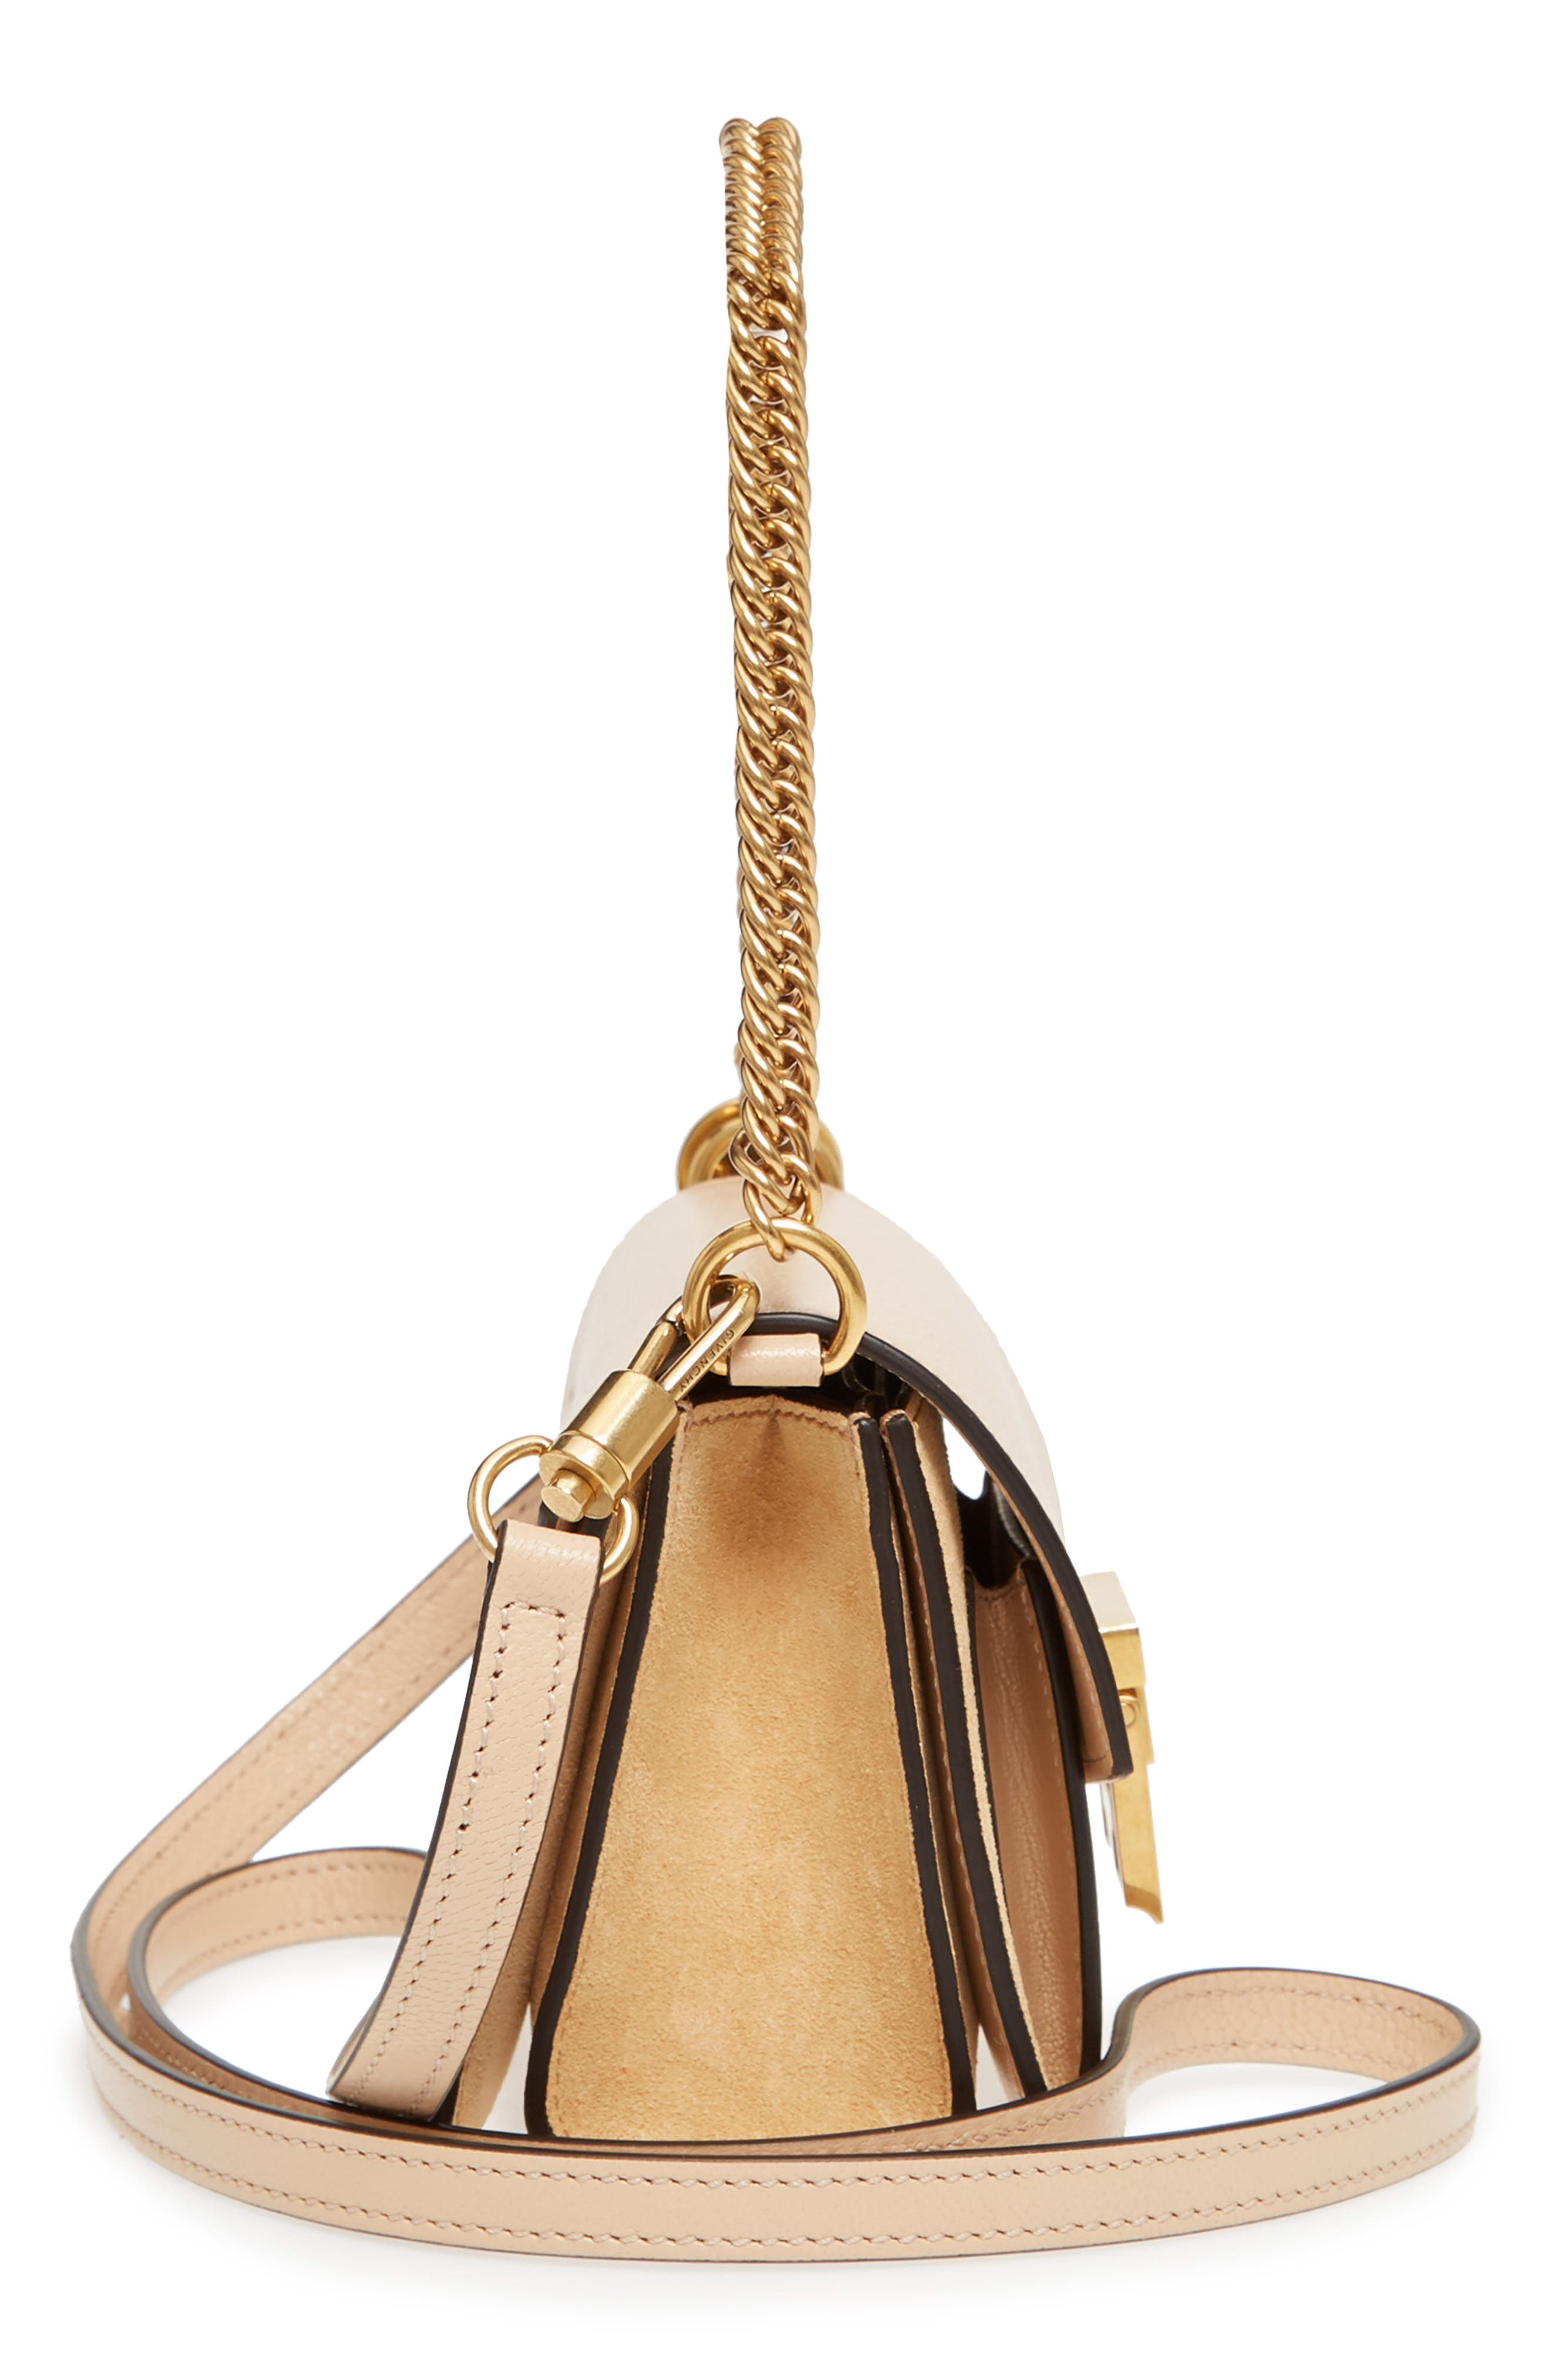 Mini GV3 Leather & Suede Crossbody Bag,                             Alternate thumbnail 5, color,                             NUDE/ LIGHT BEIGE